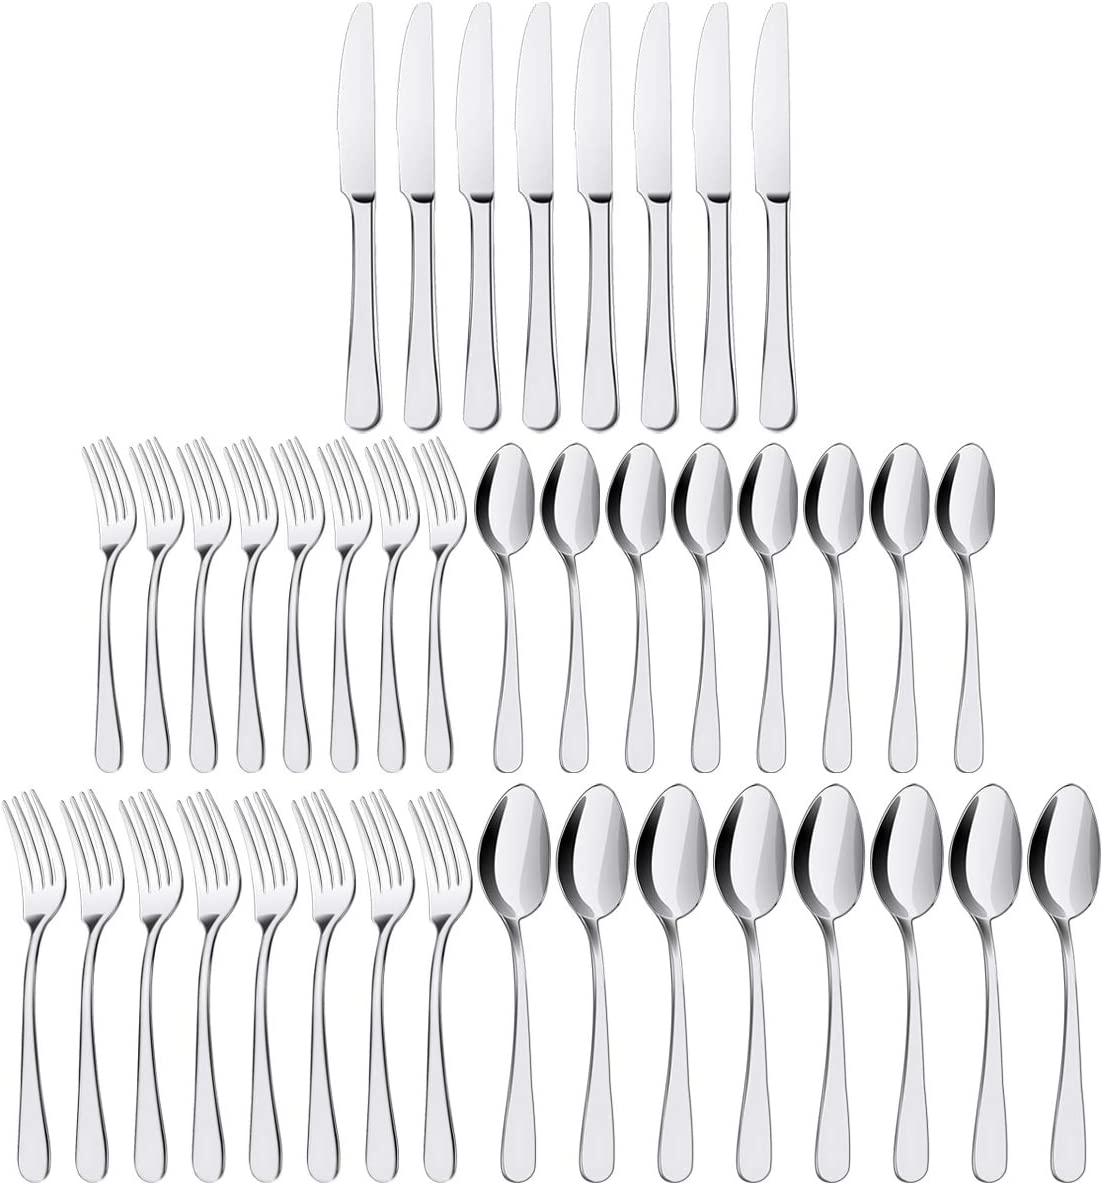 Silverware Set, ENLOY 40 Pieces Stainless Steel Flatware Set, Kitchen Utensil Set Cutlery Tableware for Home and Restaurant, Service for 8, Dinner Knives/Spoons/Forks, Dishwasher Safe